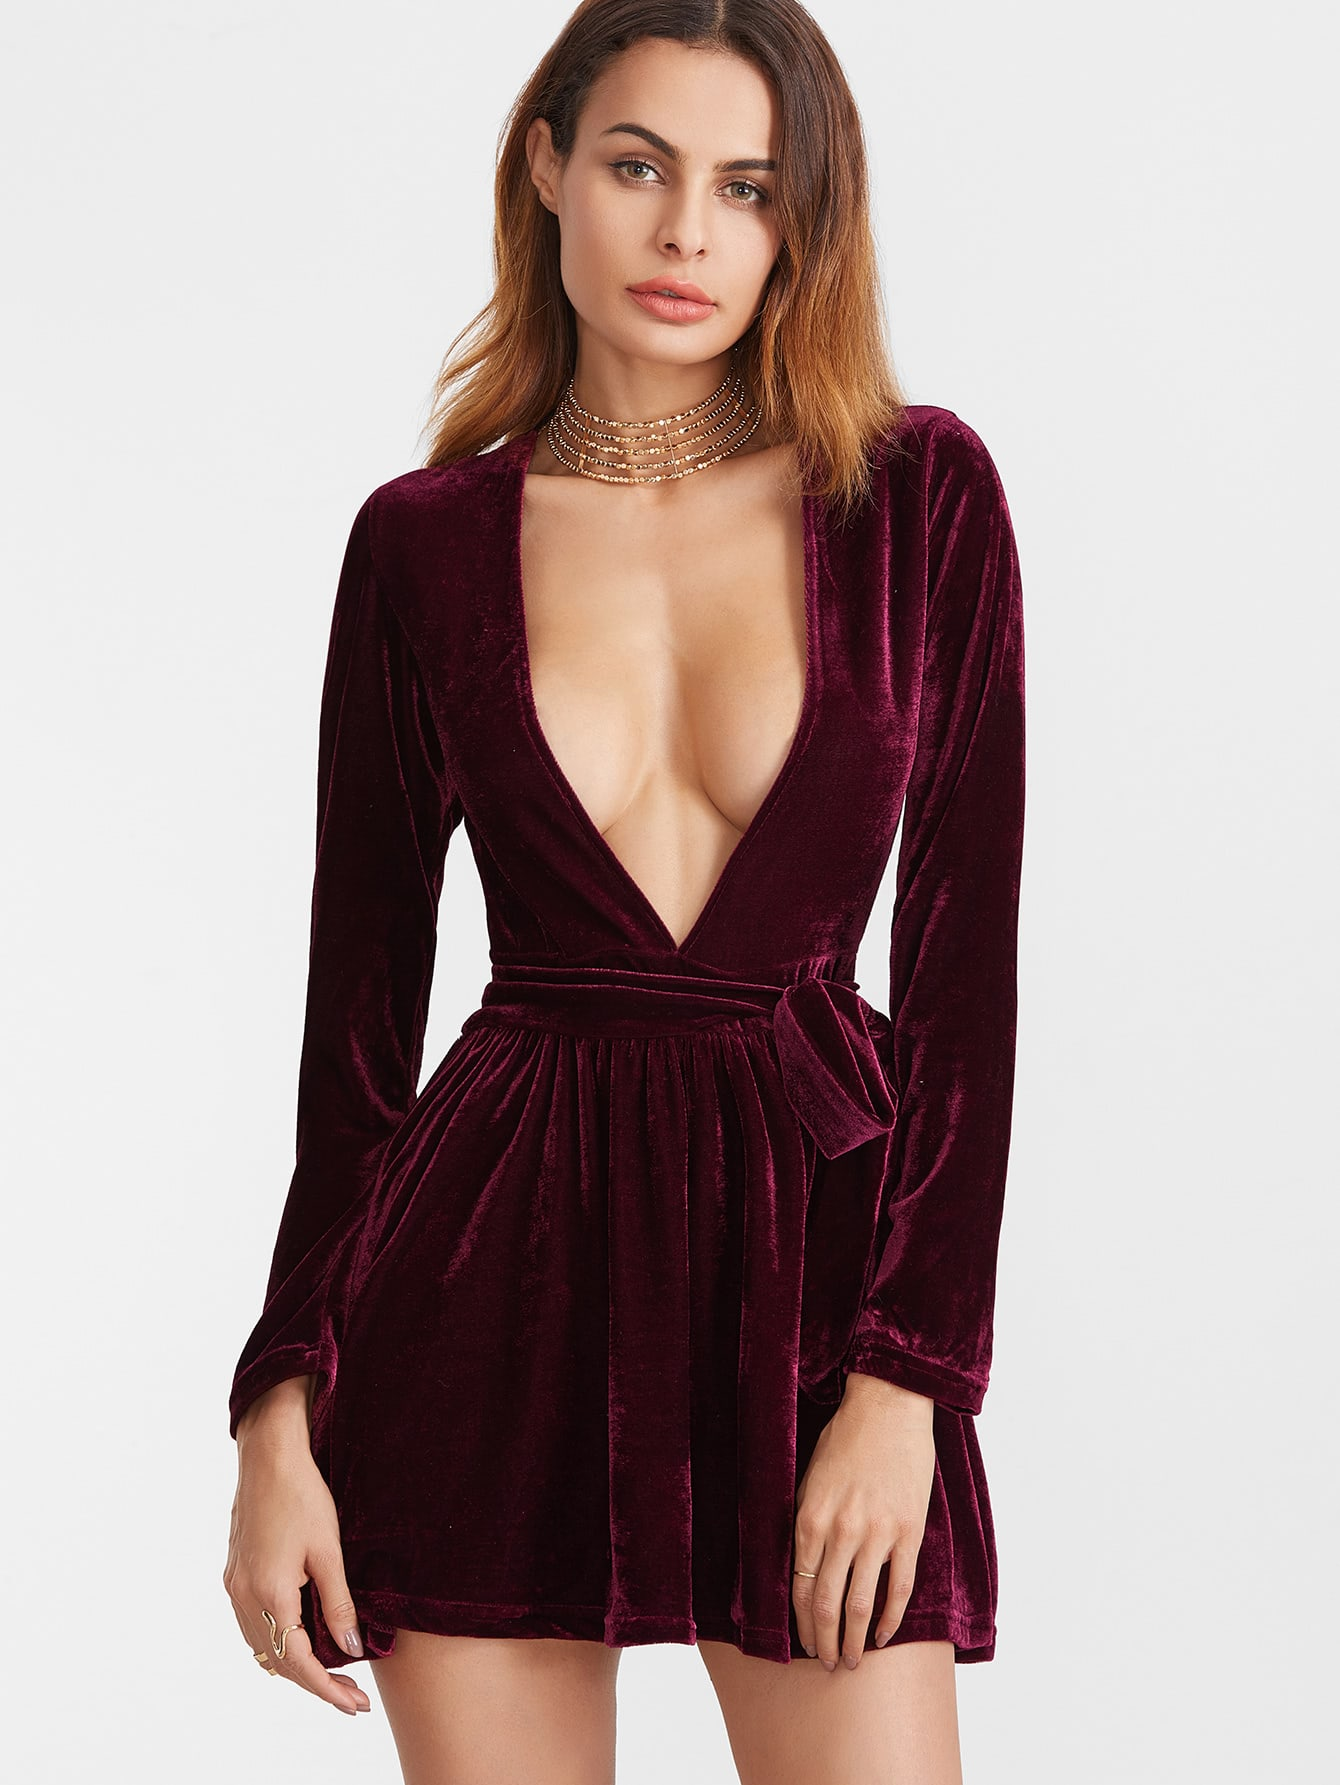 dress with low v neck